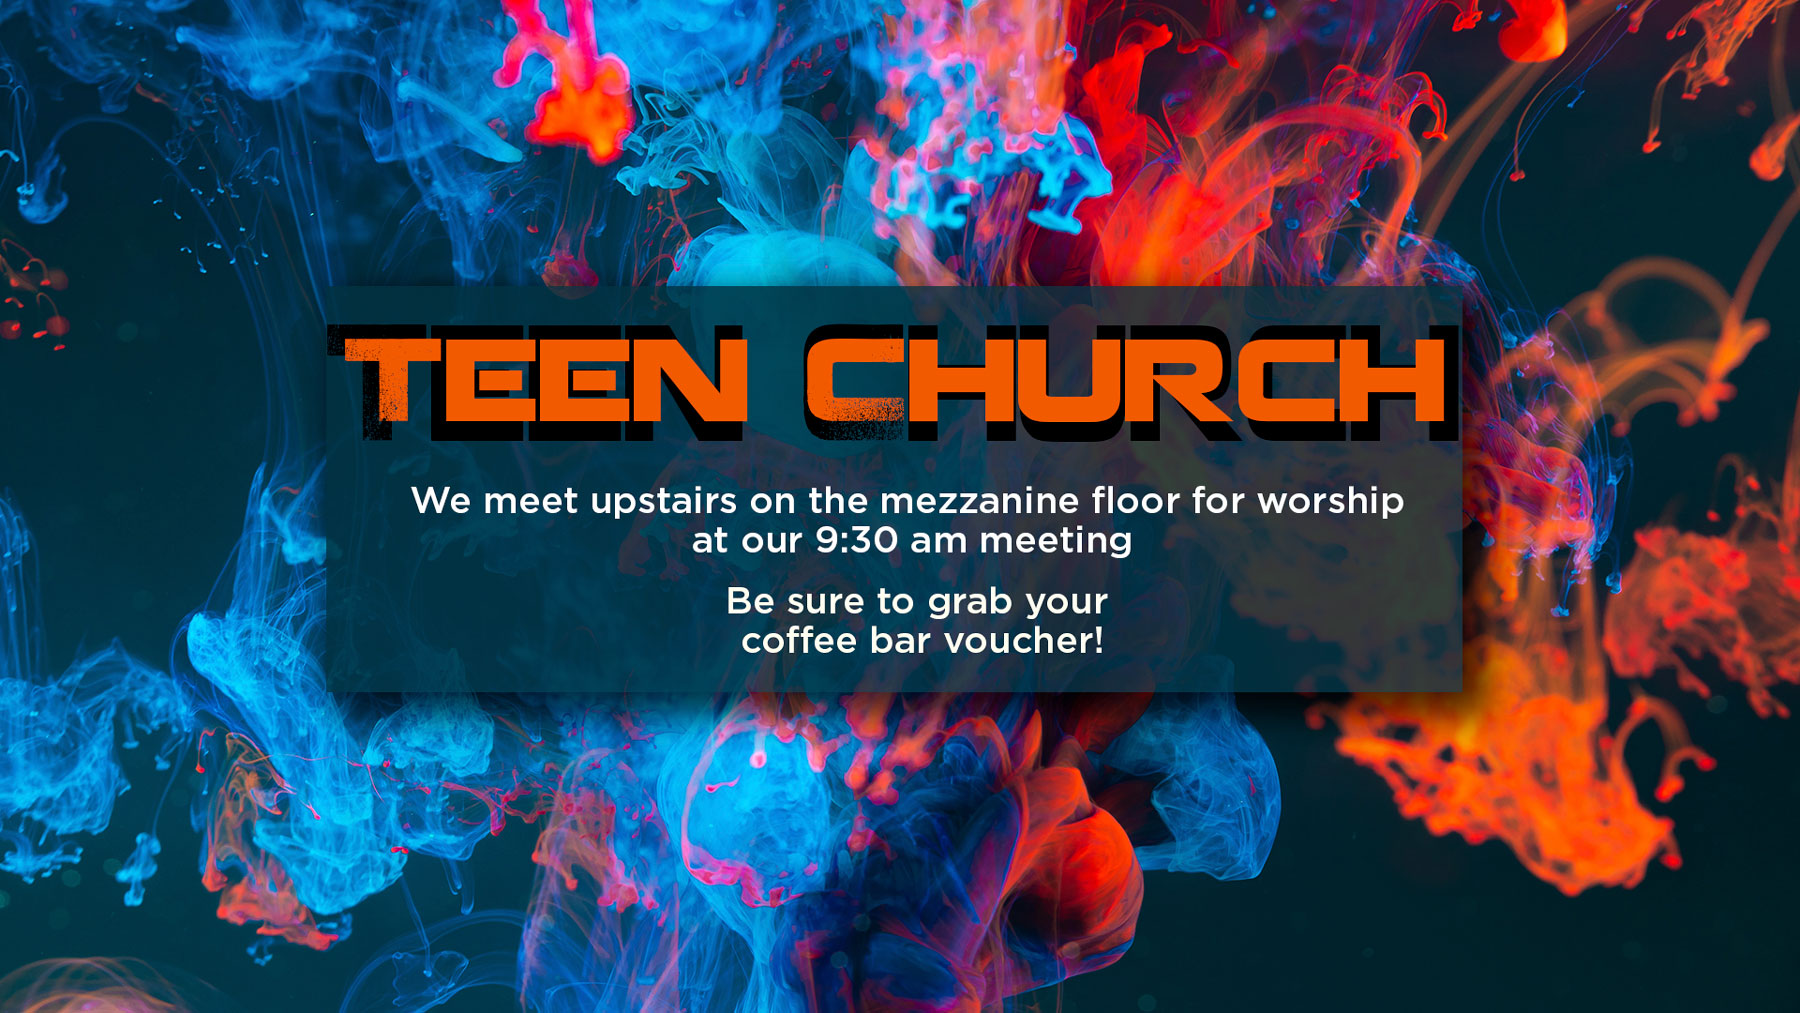 Teen Church